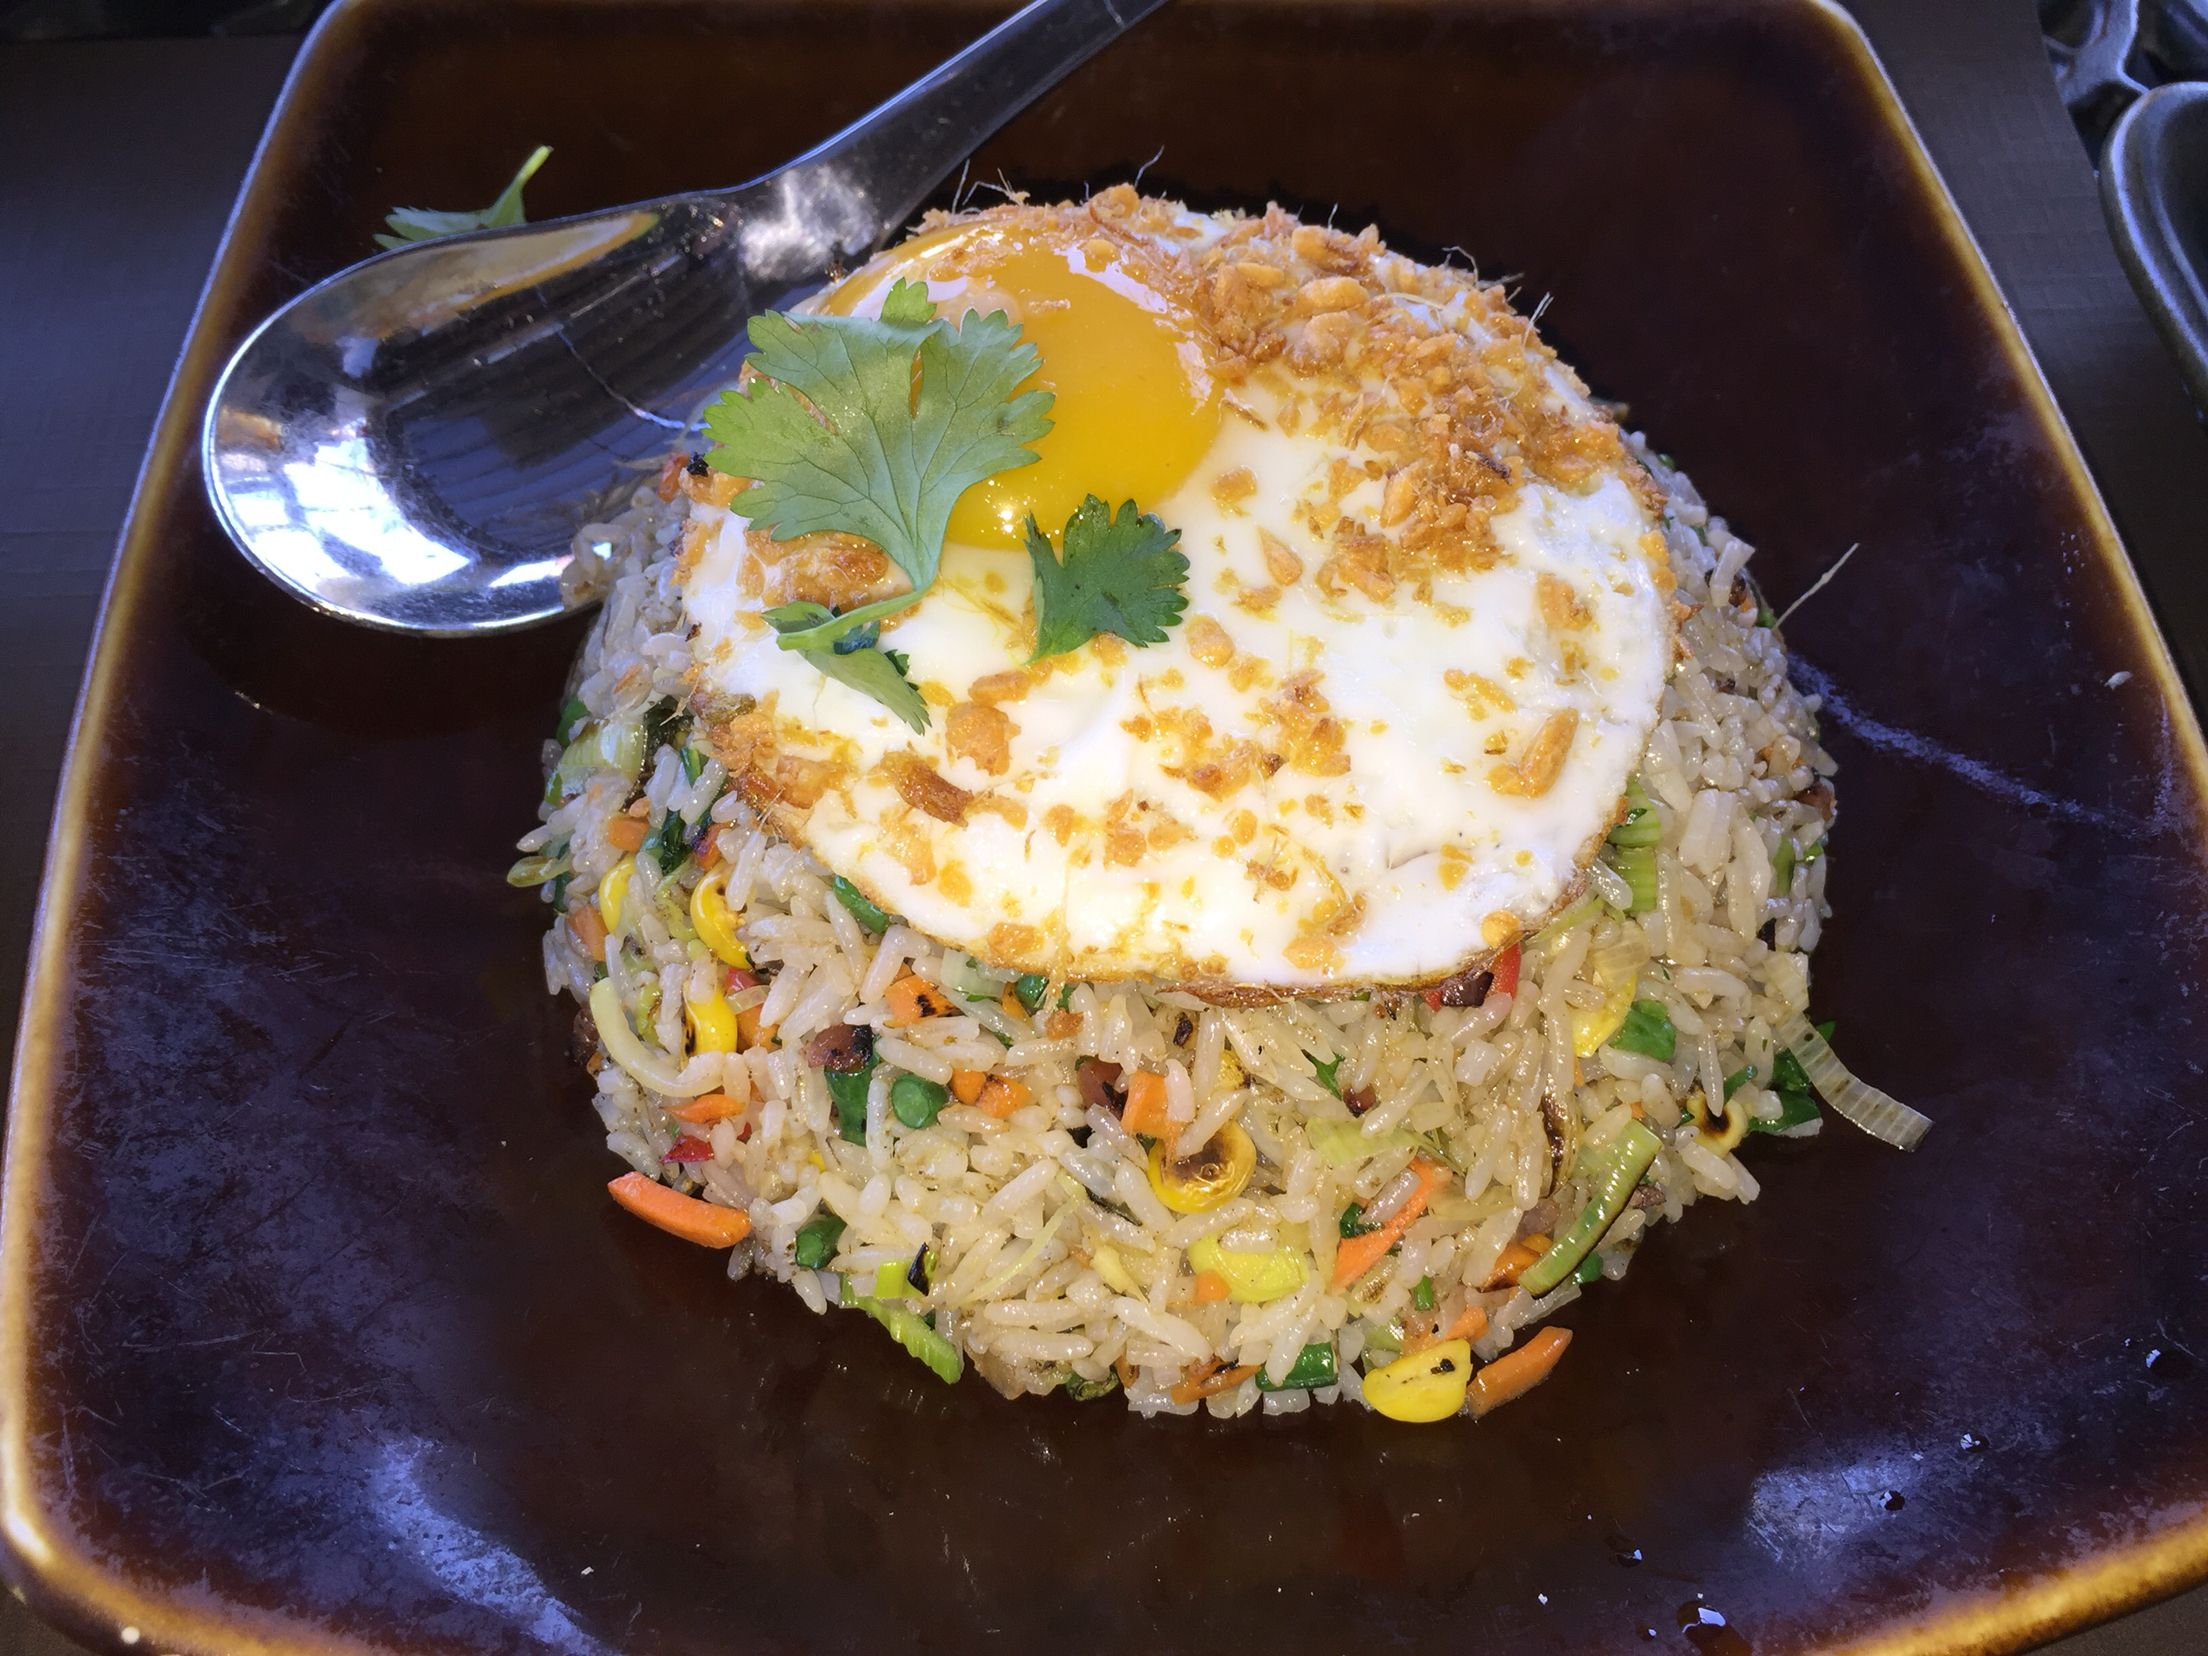 rocksugar pan asian kitchen century city ca ginger fried rice